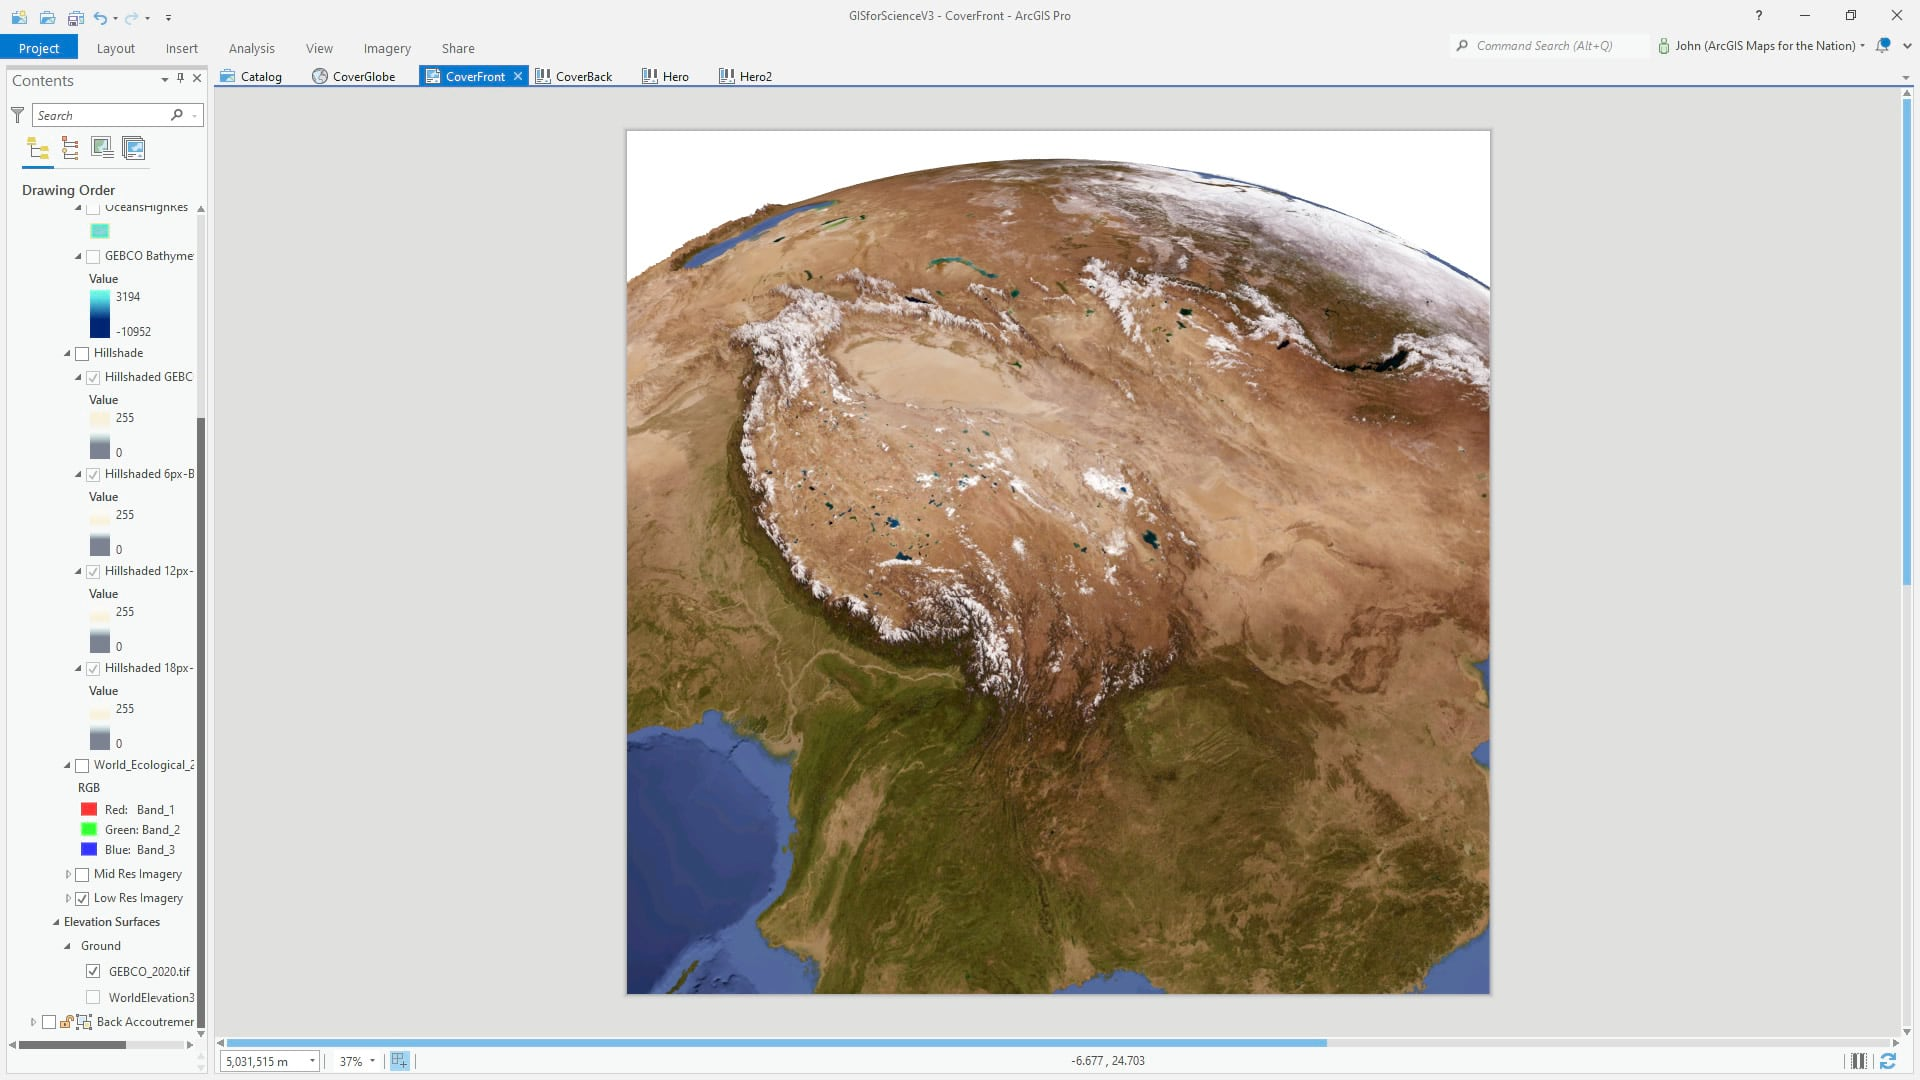 ArcGIS Pro 3D global scene with vertical exaggeration.